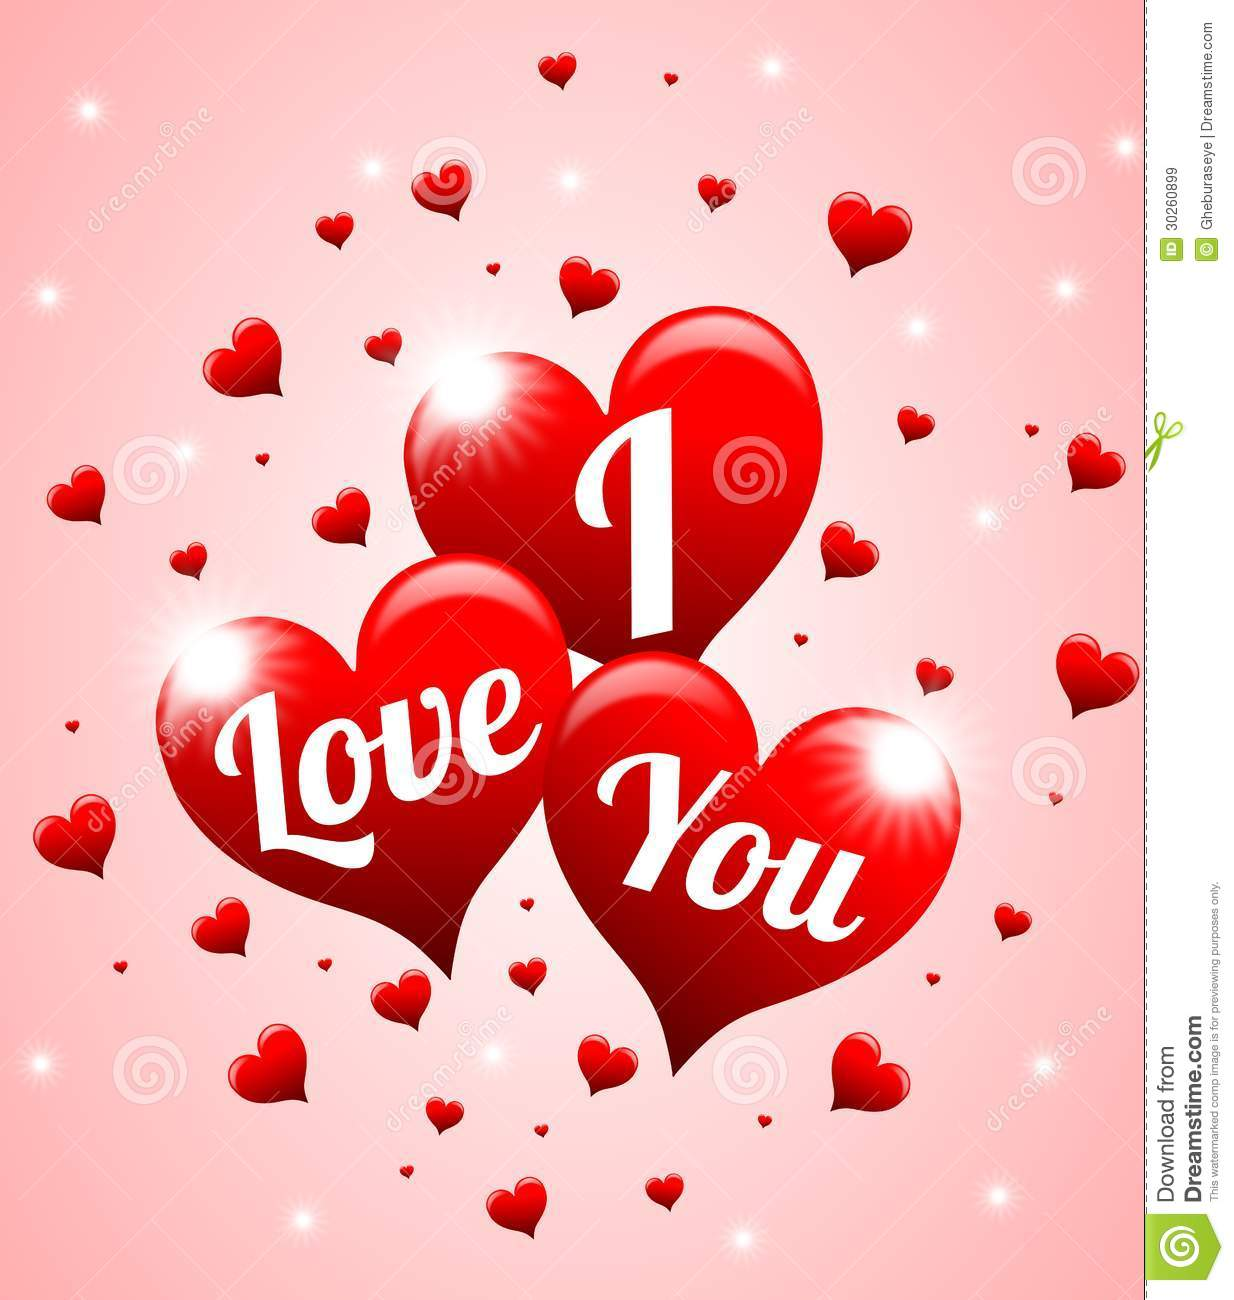 I Love You Royalty Free Stock Images - Image: 30260899